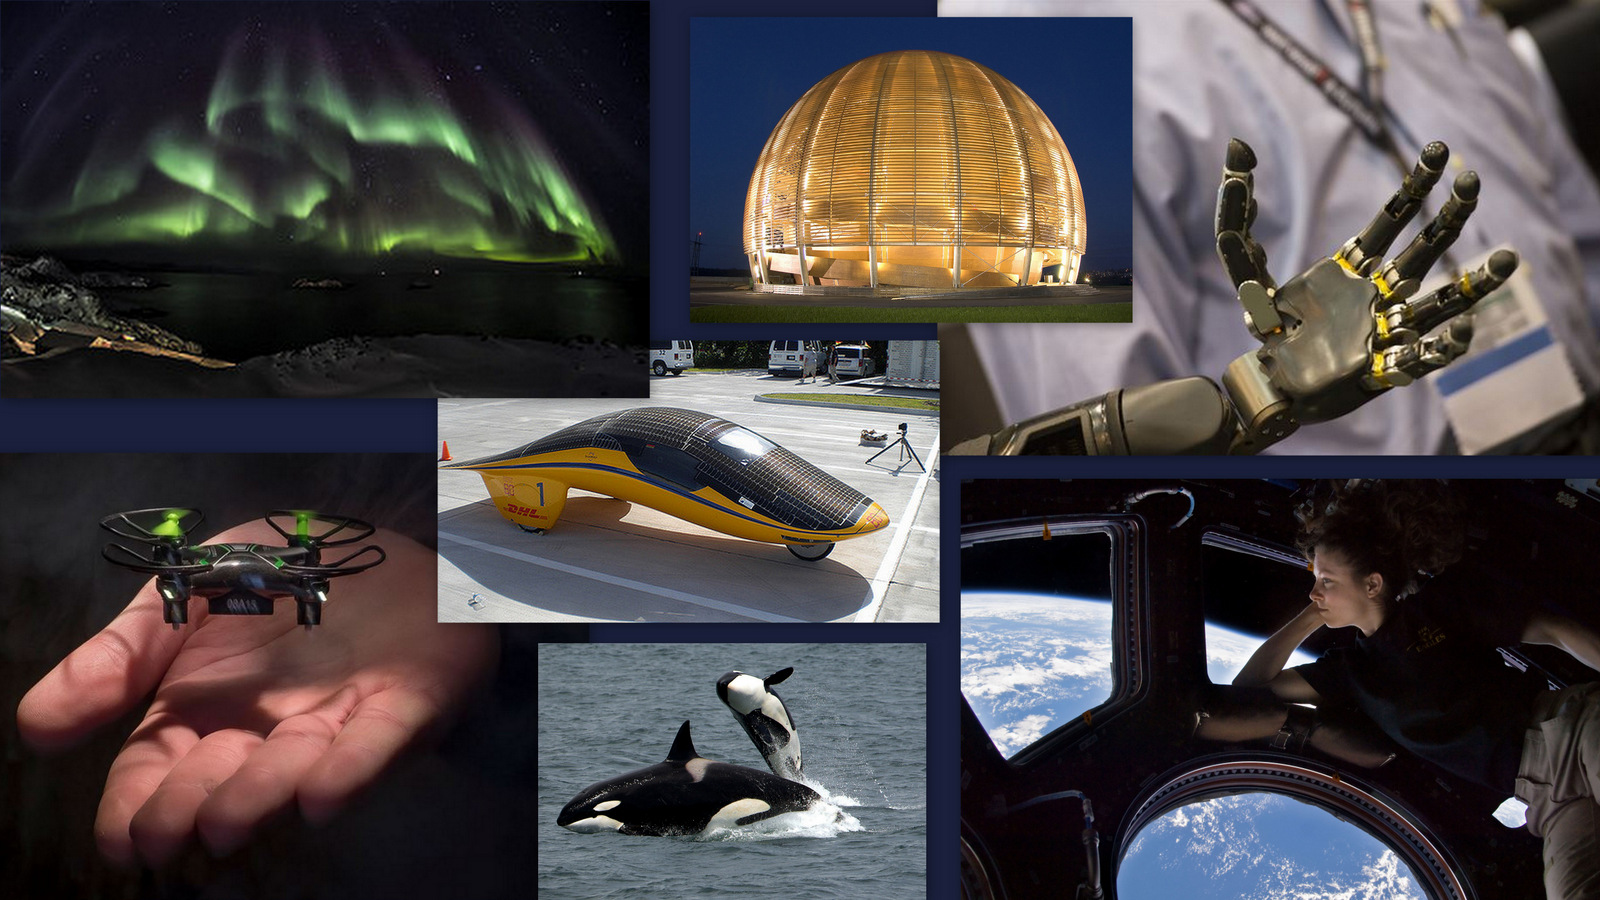 Image: collage of innovation pictures